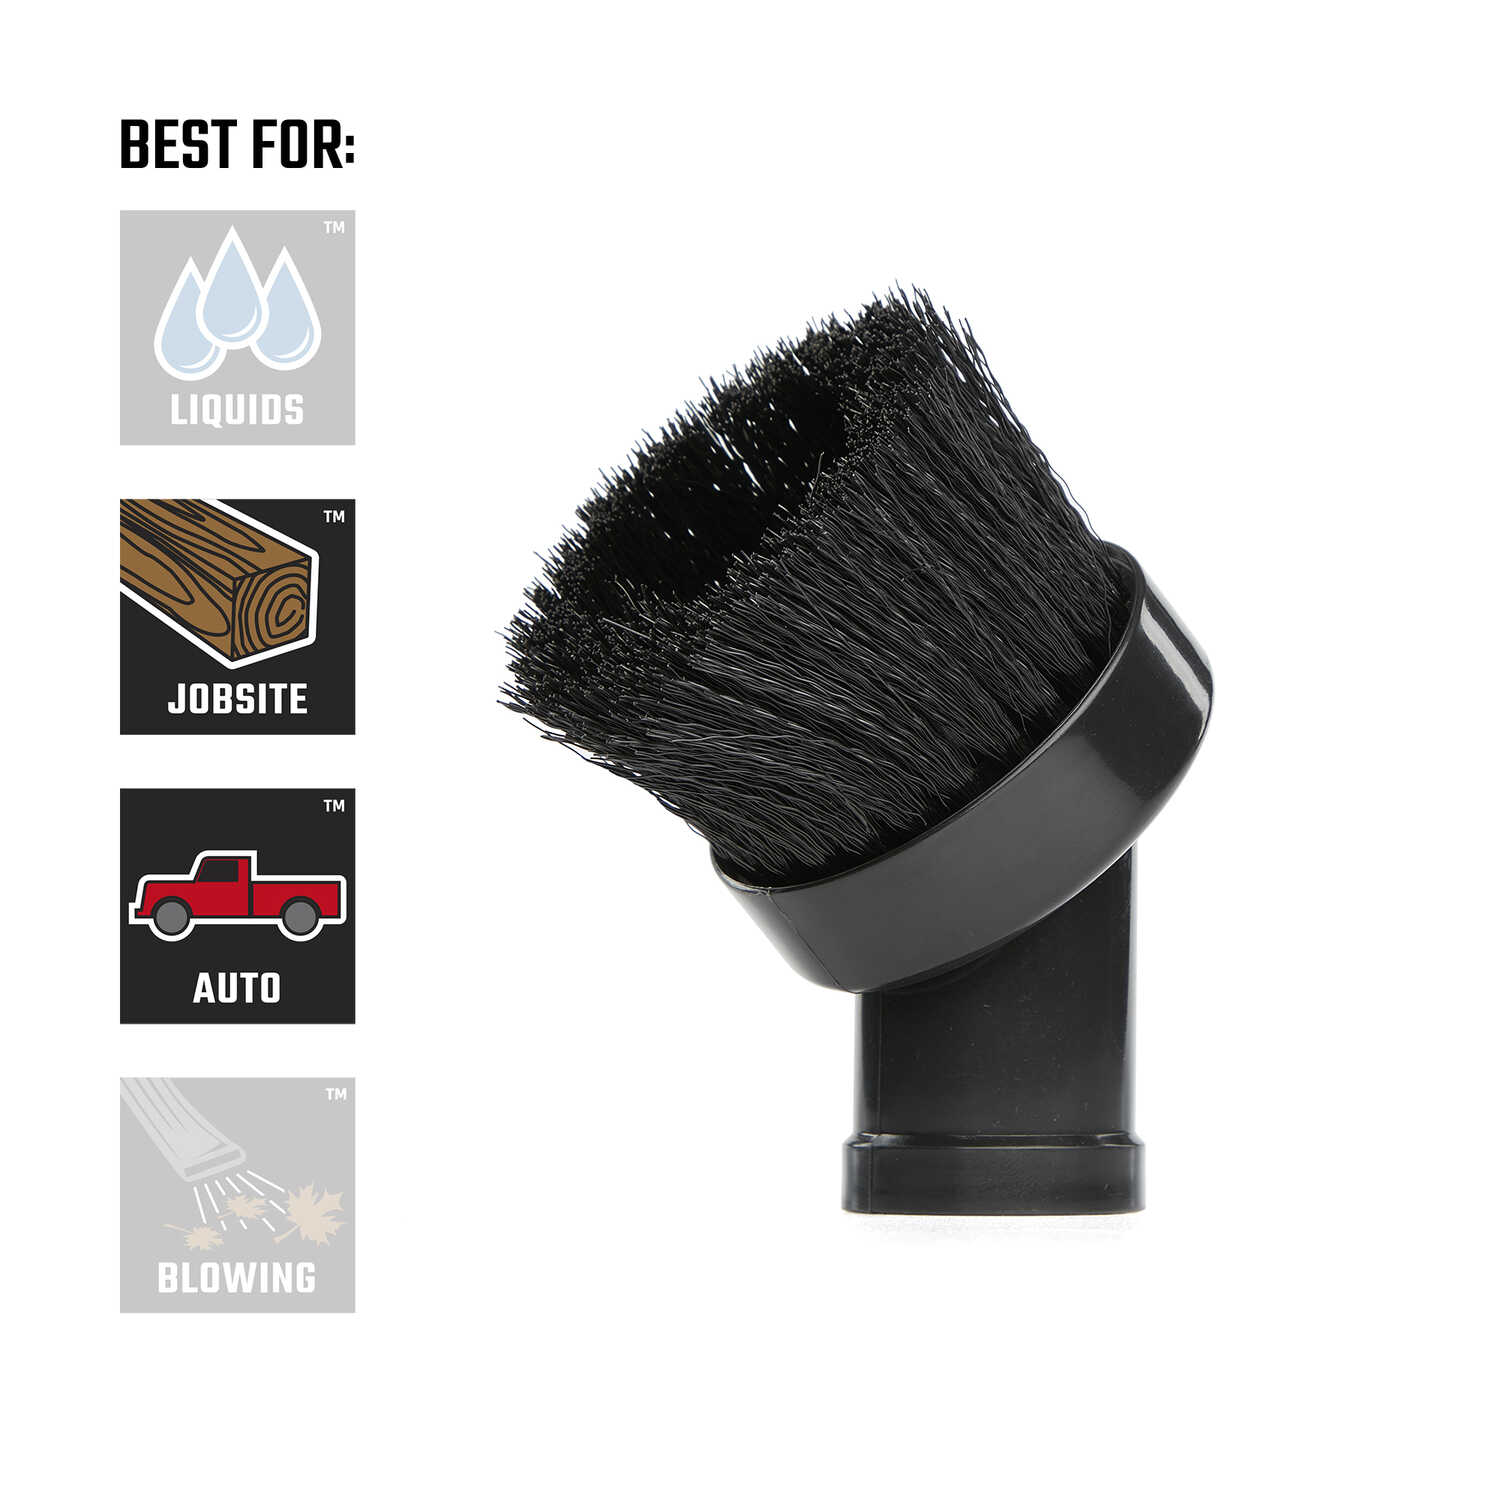 Craftsman  3 in. L x 4 in. W x 1-1/4 in. Dia. Dusting Brush  1 pc.